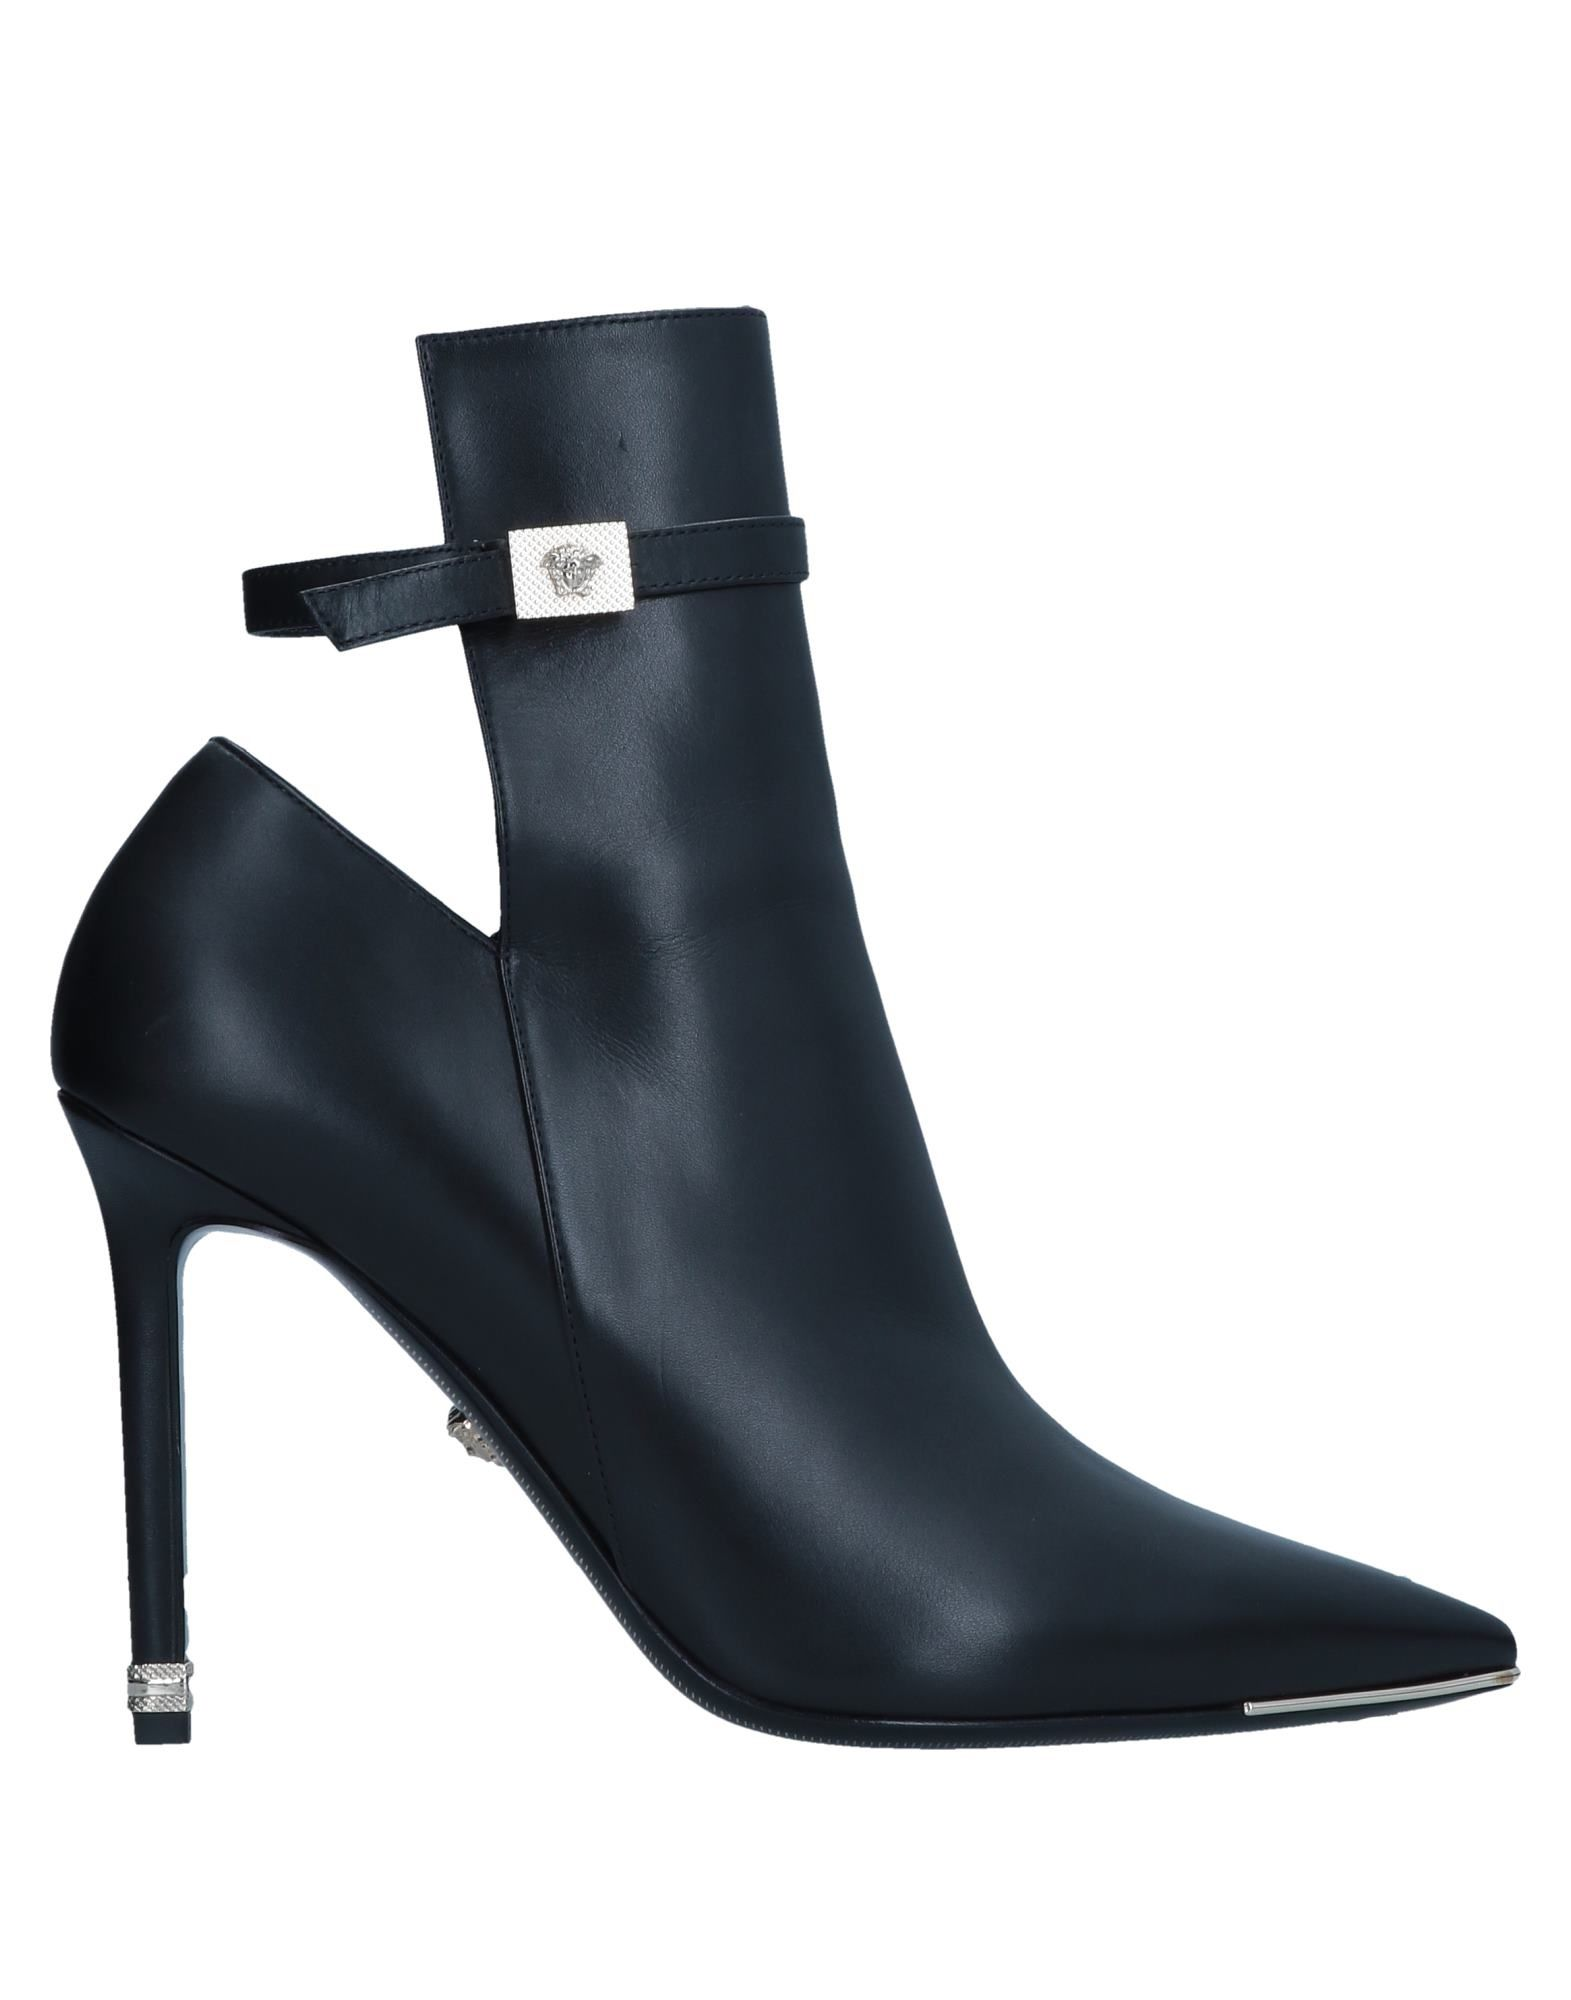 Versace Ankle Boot Boots - Women Versace Ankle Boots Boot online on  Australia - 11551219RM d38c38